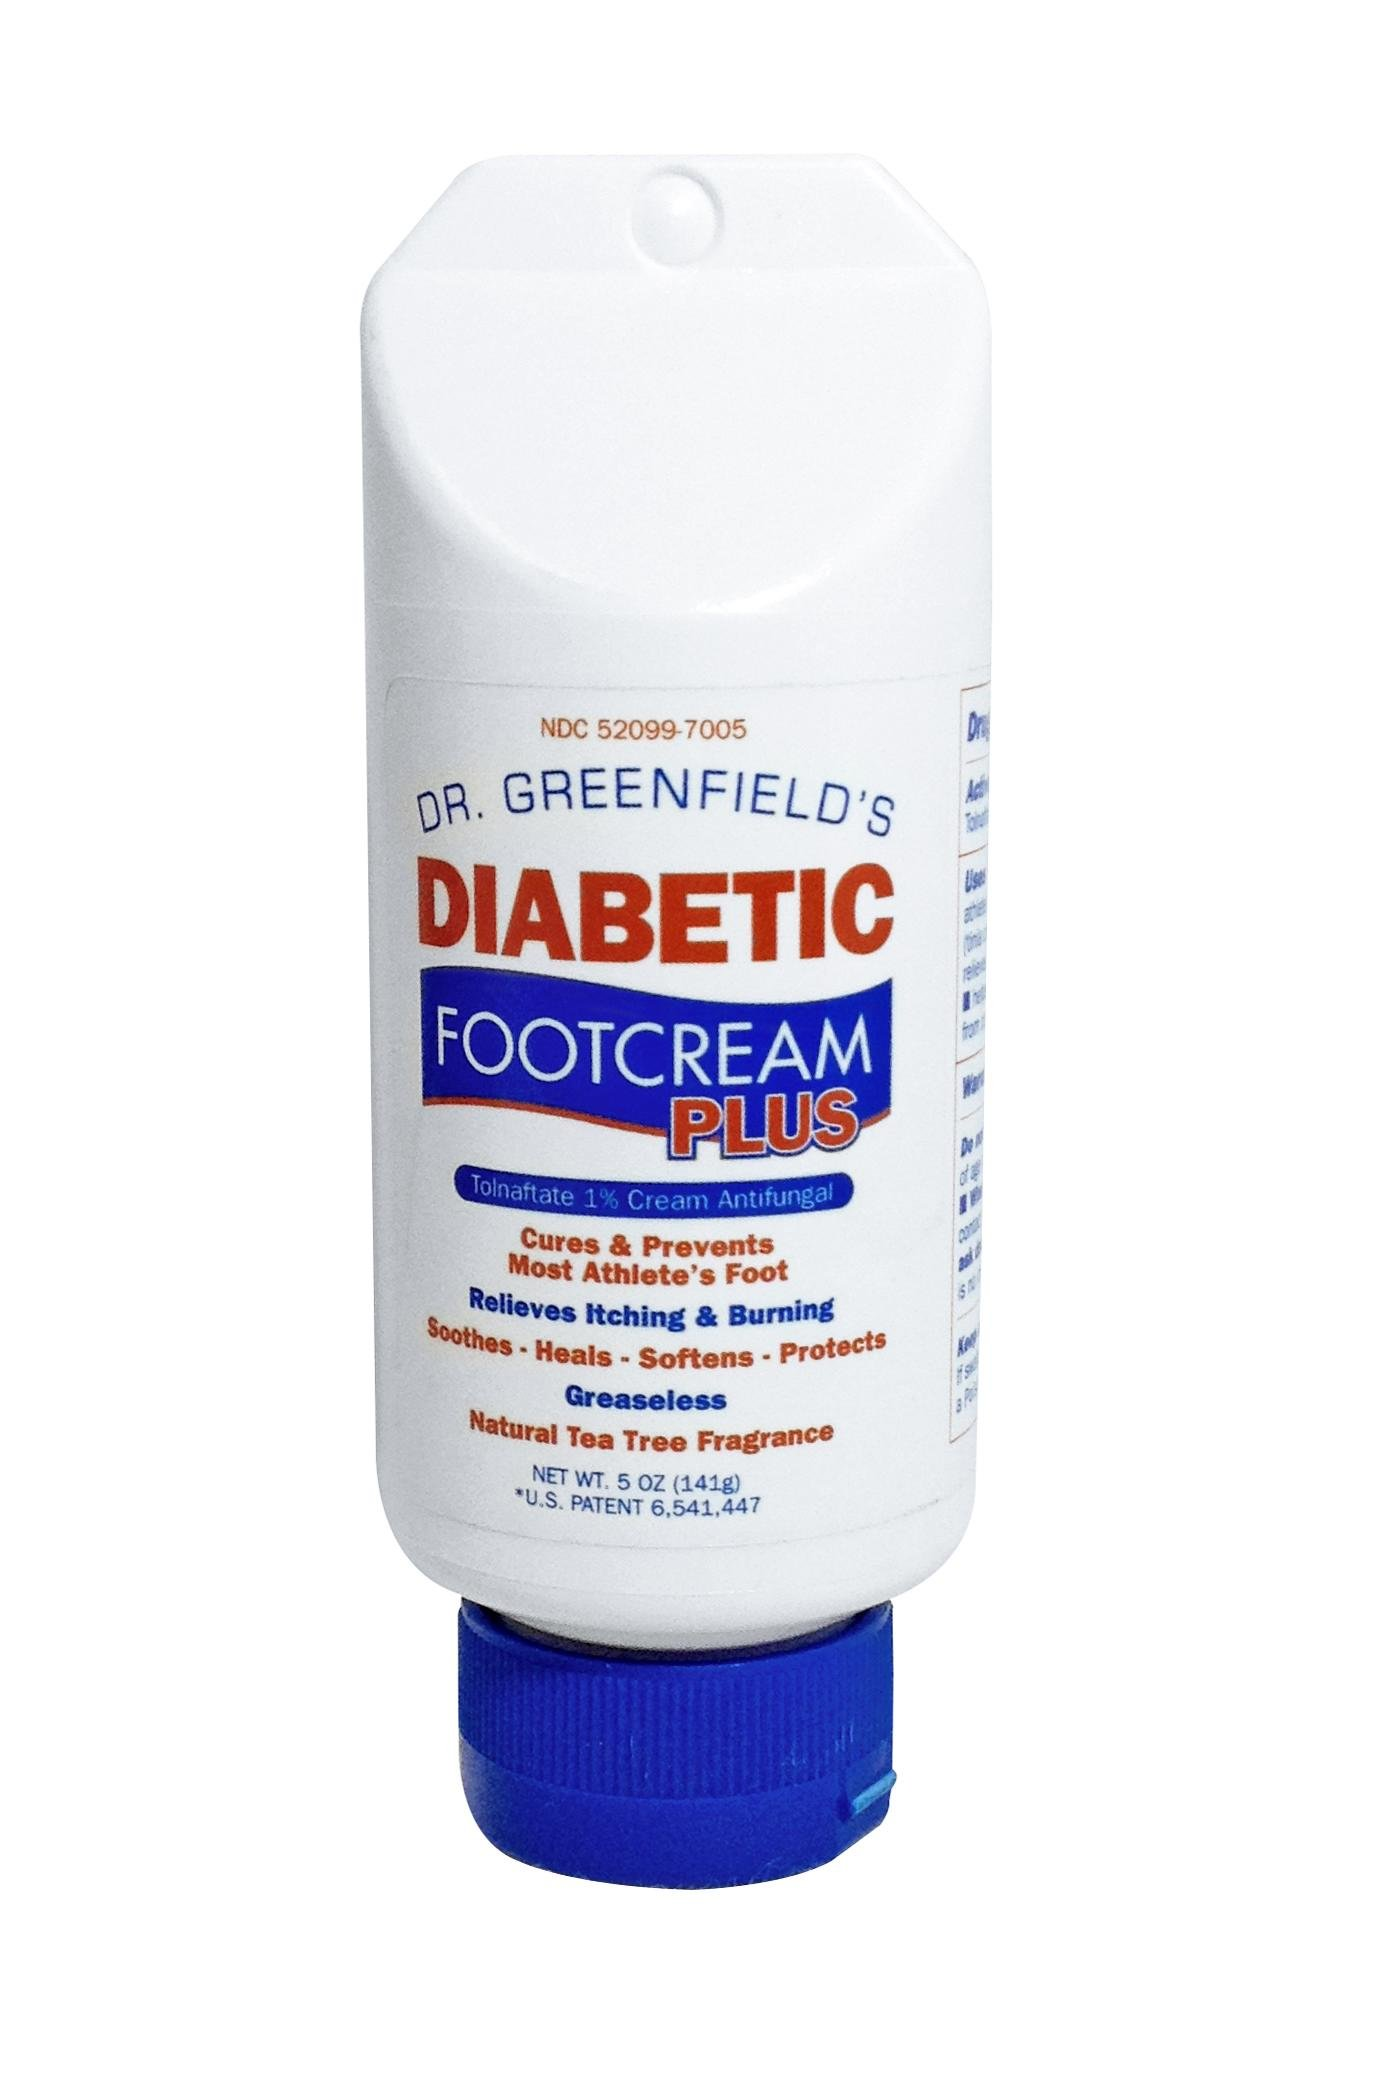 Dr Greenfield's Diabetic FootCream PLUS Antifungal Foot Cream for Athlete's Foot - 5 ounces